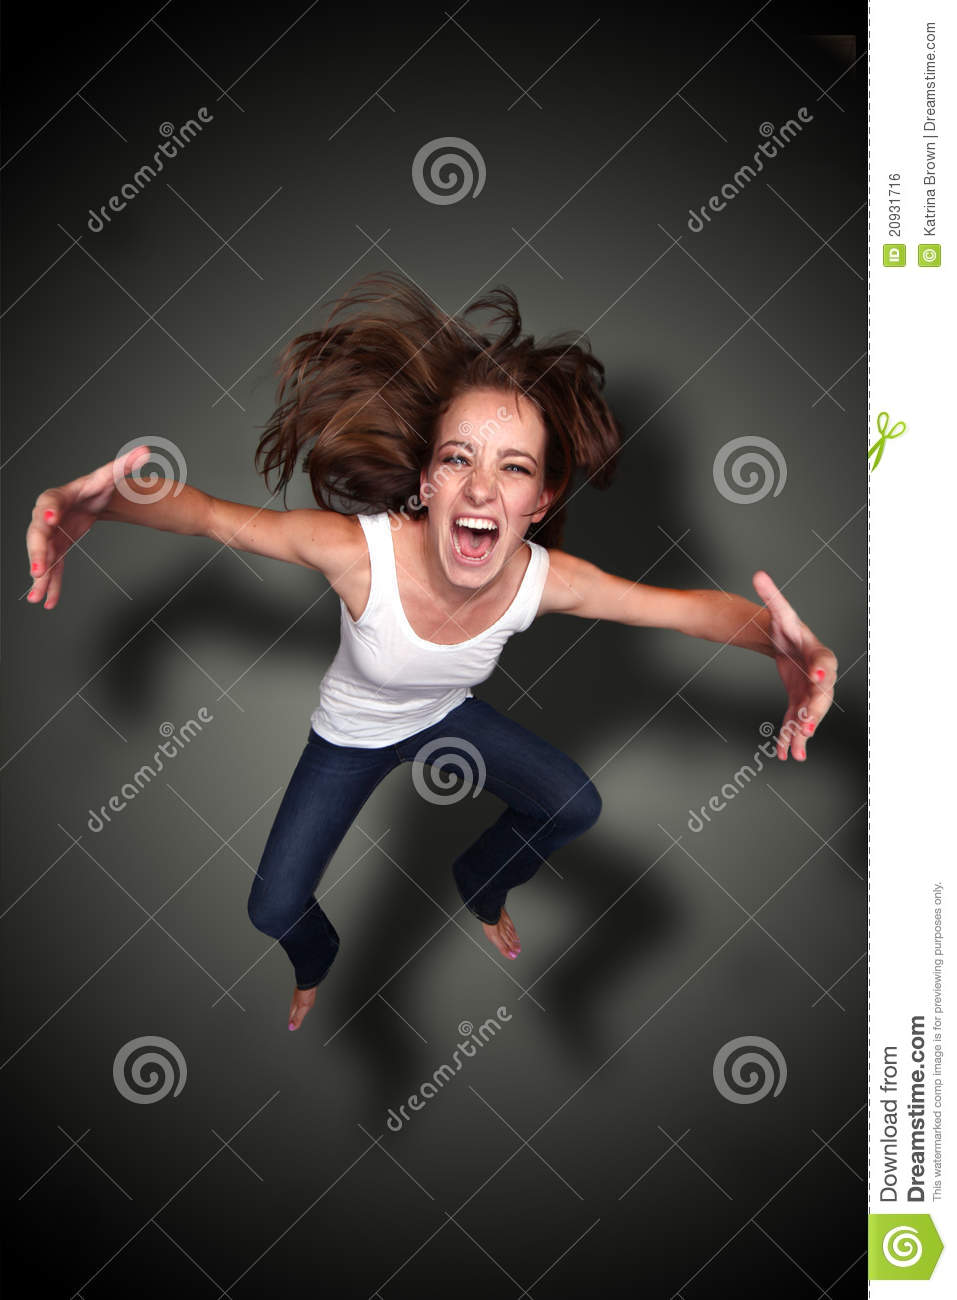 Download Falling Person Screaming With Arms Outstretched Stock Photo - Image of screaming, caucasian: 20931716